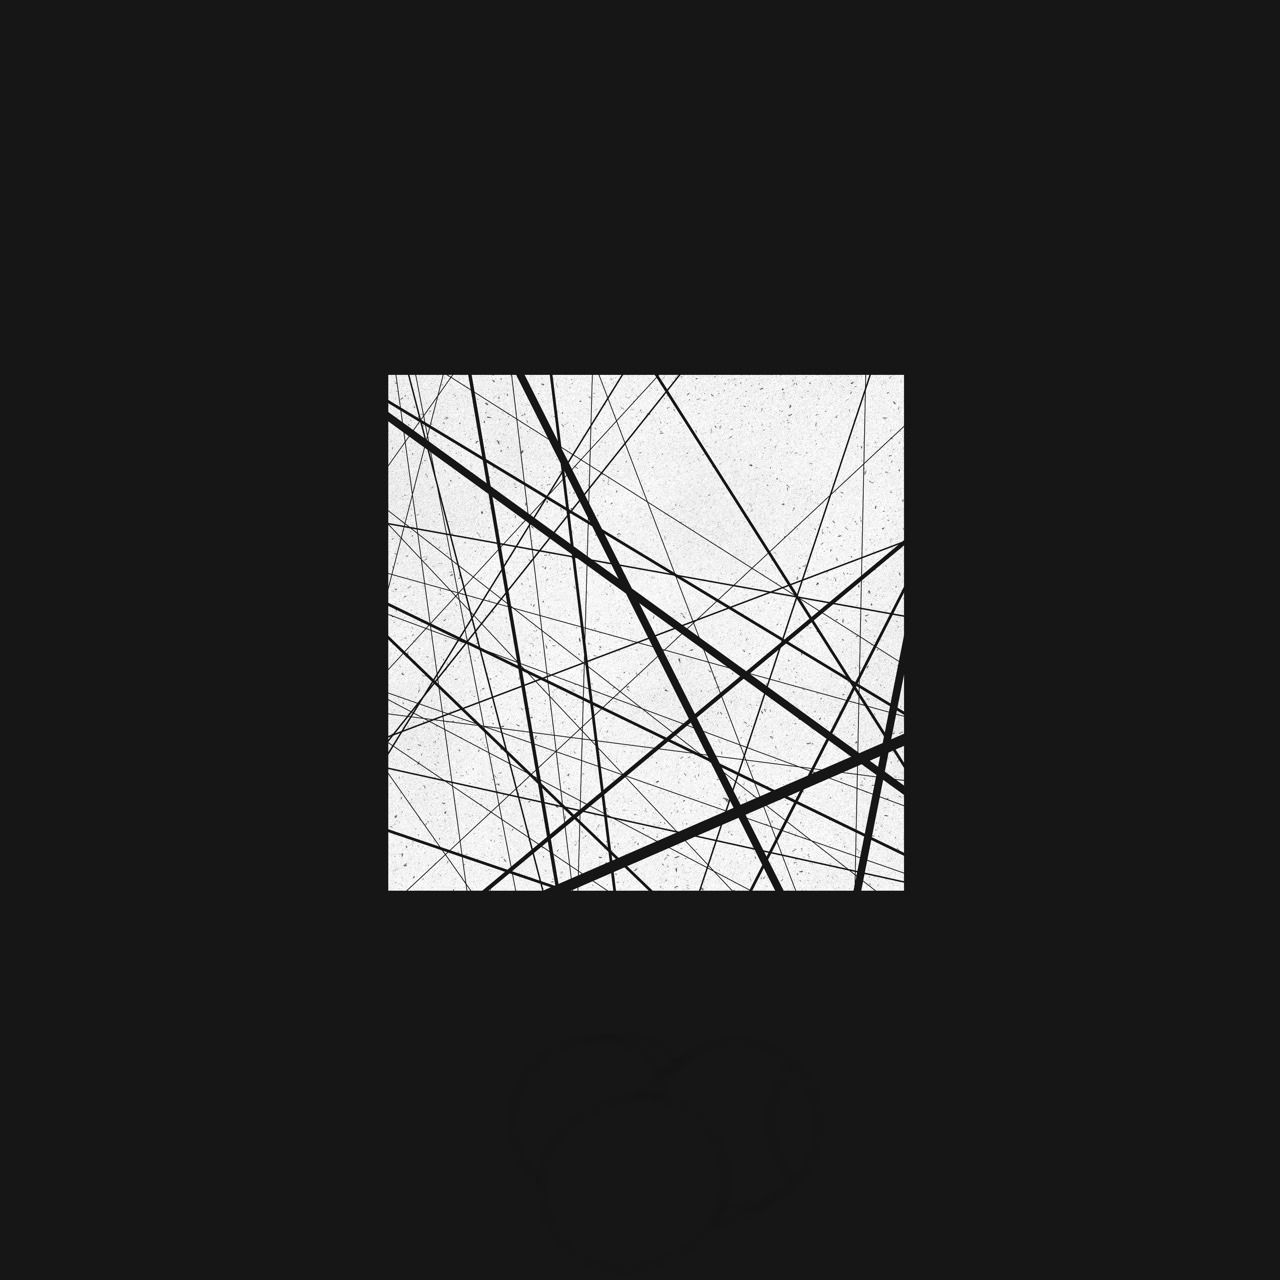 Art Of Geometry Art Abstract Minimalism Shapes Geometric Geometry Aesthetic Tattoo Inspiration Black And White Des Graphic Design Abstract Geometric